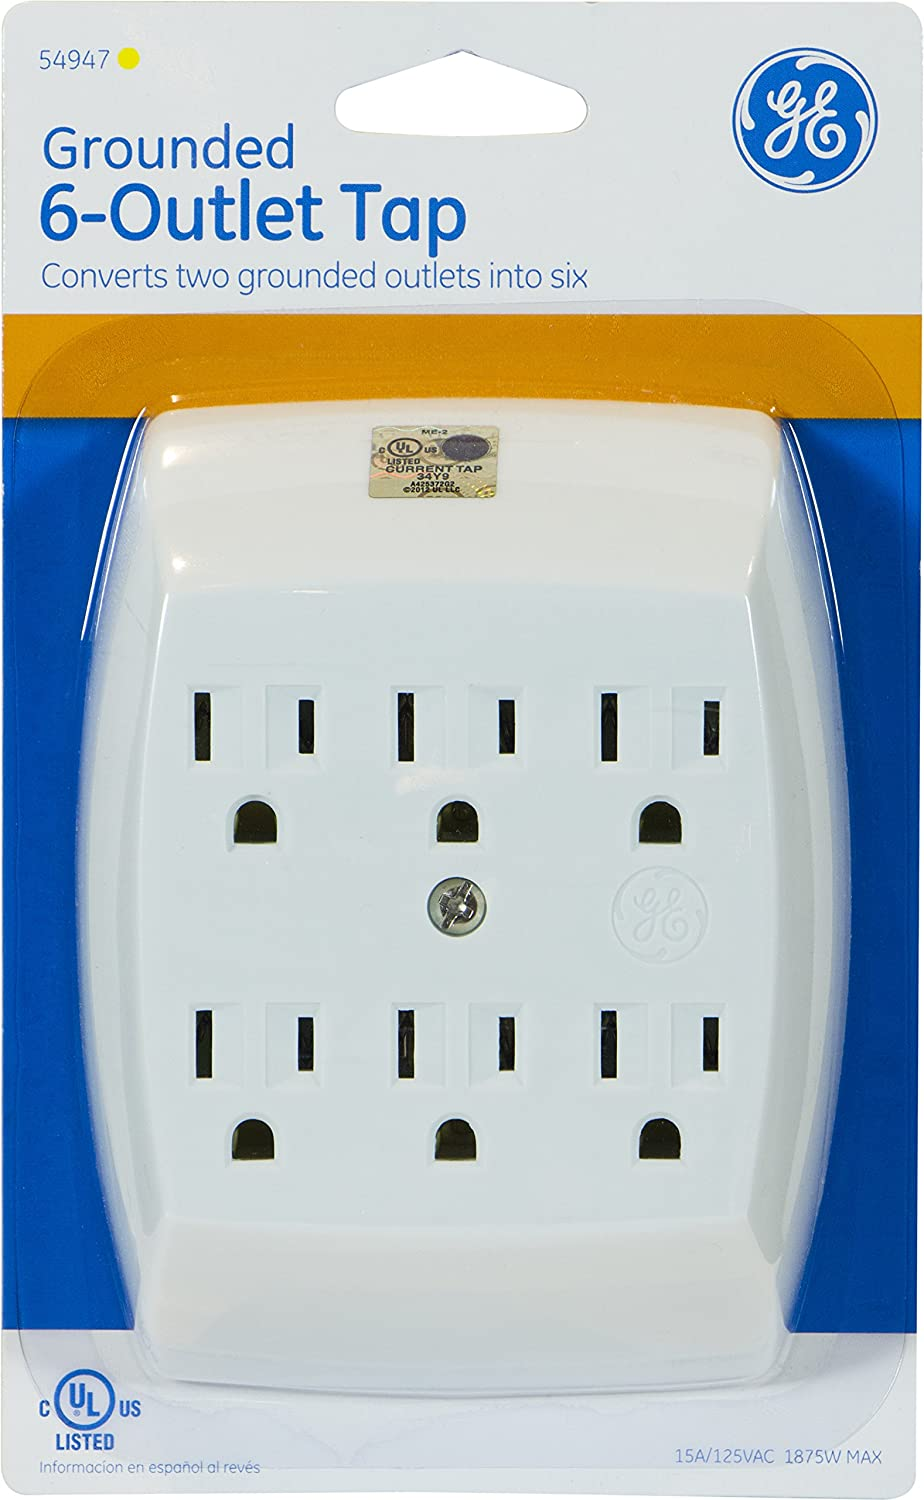 GE 6-Outlet Tap, Grounded, White, 54947 - Electrical Multi Outlets ...